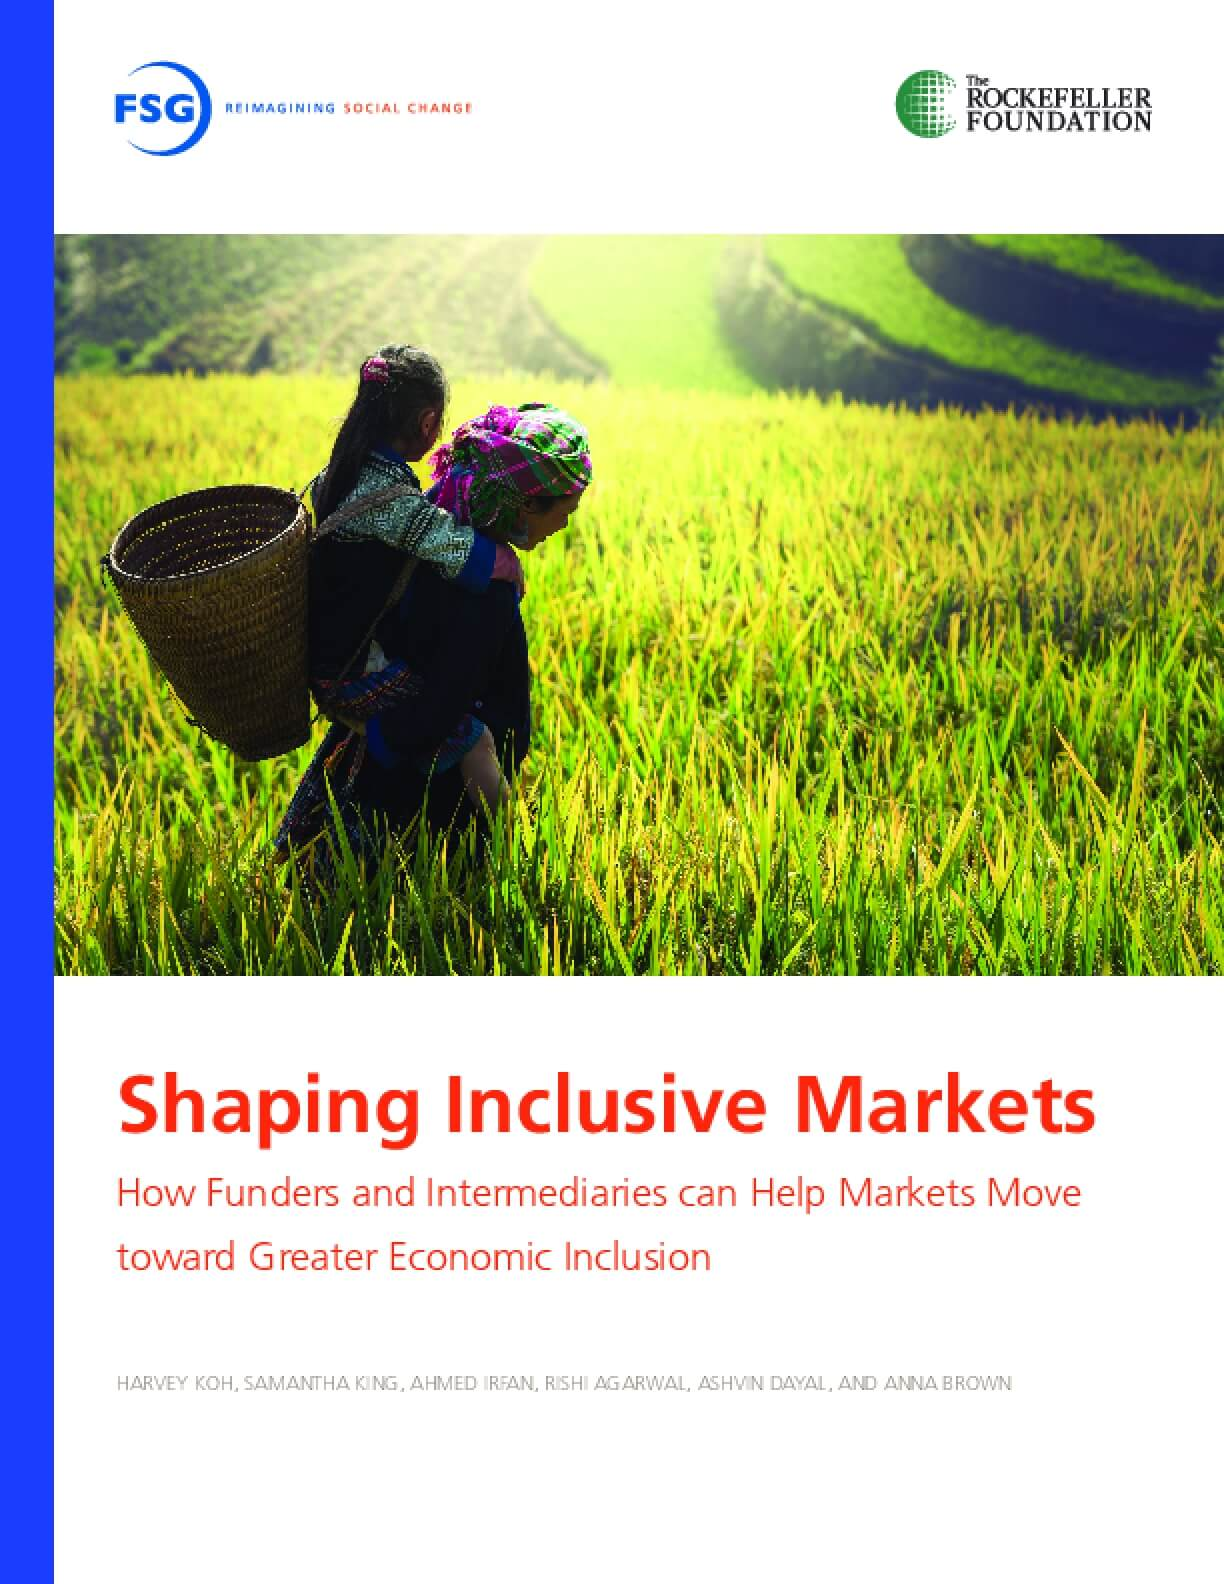 Shaping Inclusive Markets: How Funders and Intermediaries can Help Markets Move toward Greater Economic Inclusion